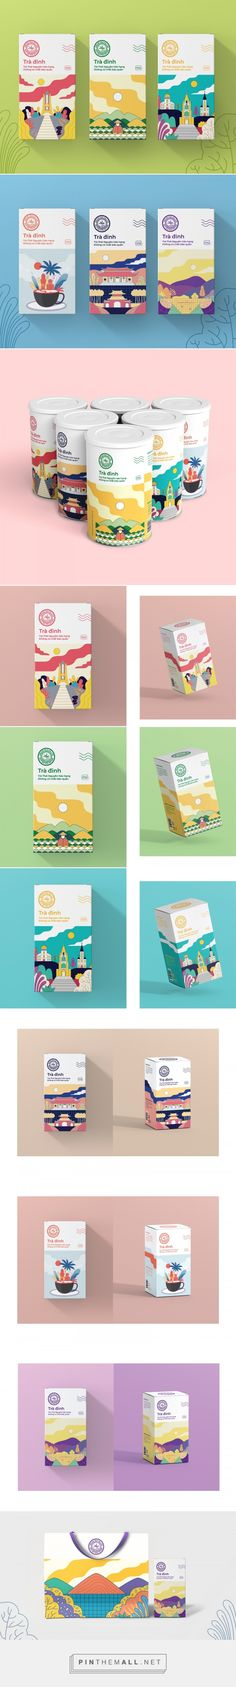 Tra Dinh Tea - Packaging of the World - Creative Package Design Gallery - https://www.packagingoftheworld.com/2018/05/tra-dinh-tea.html